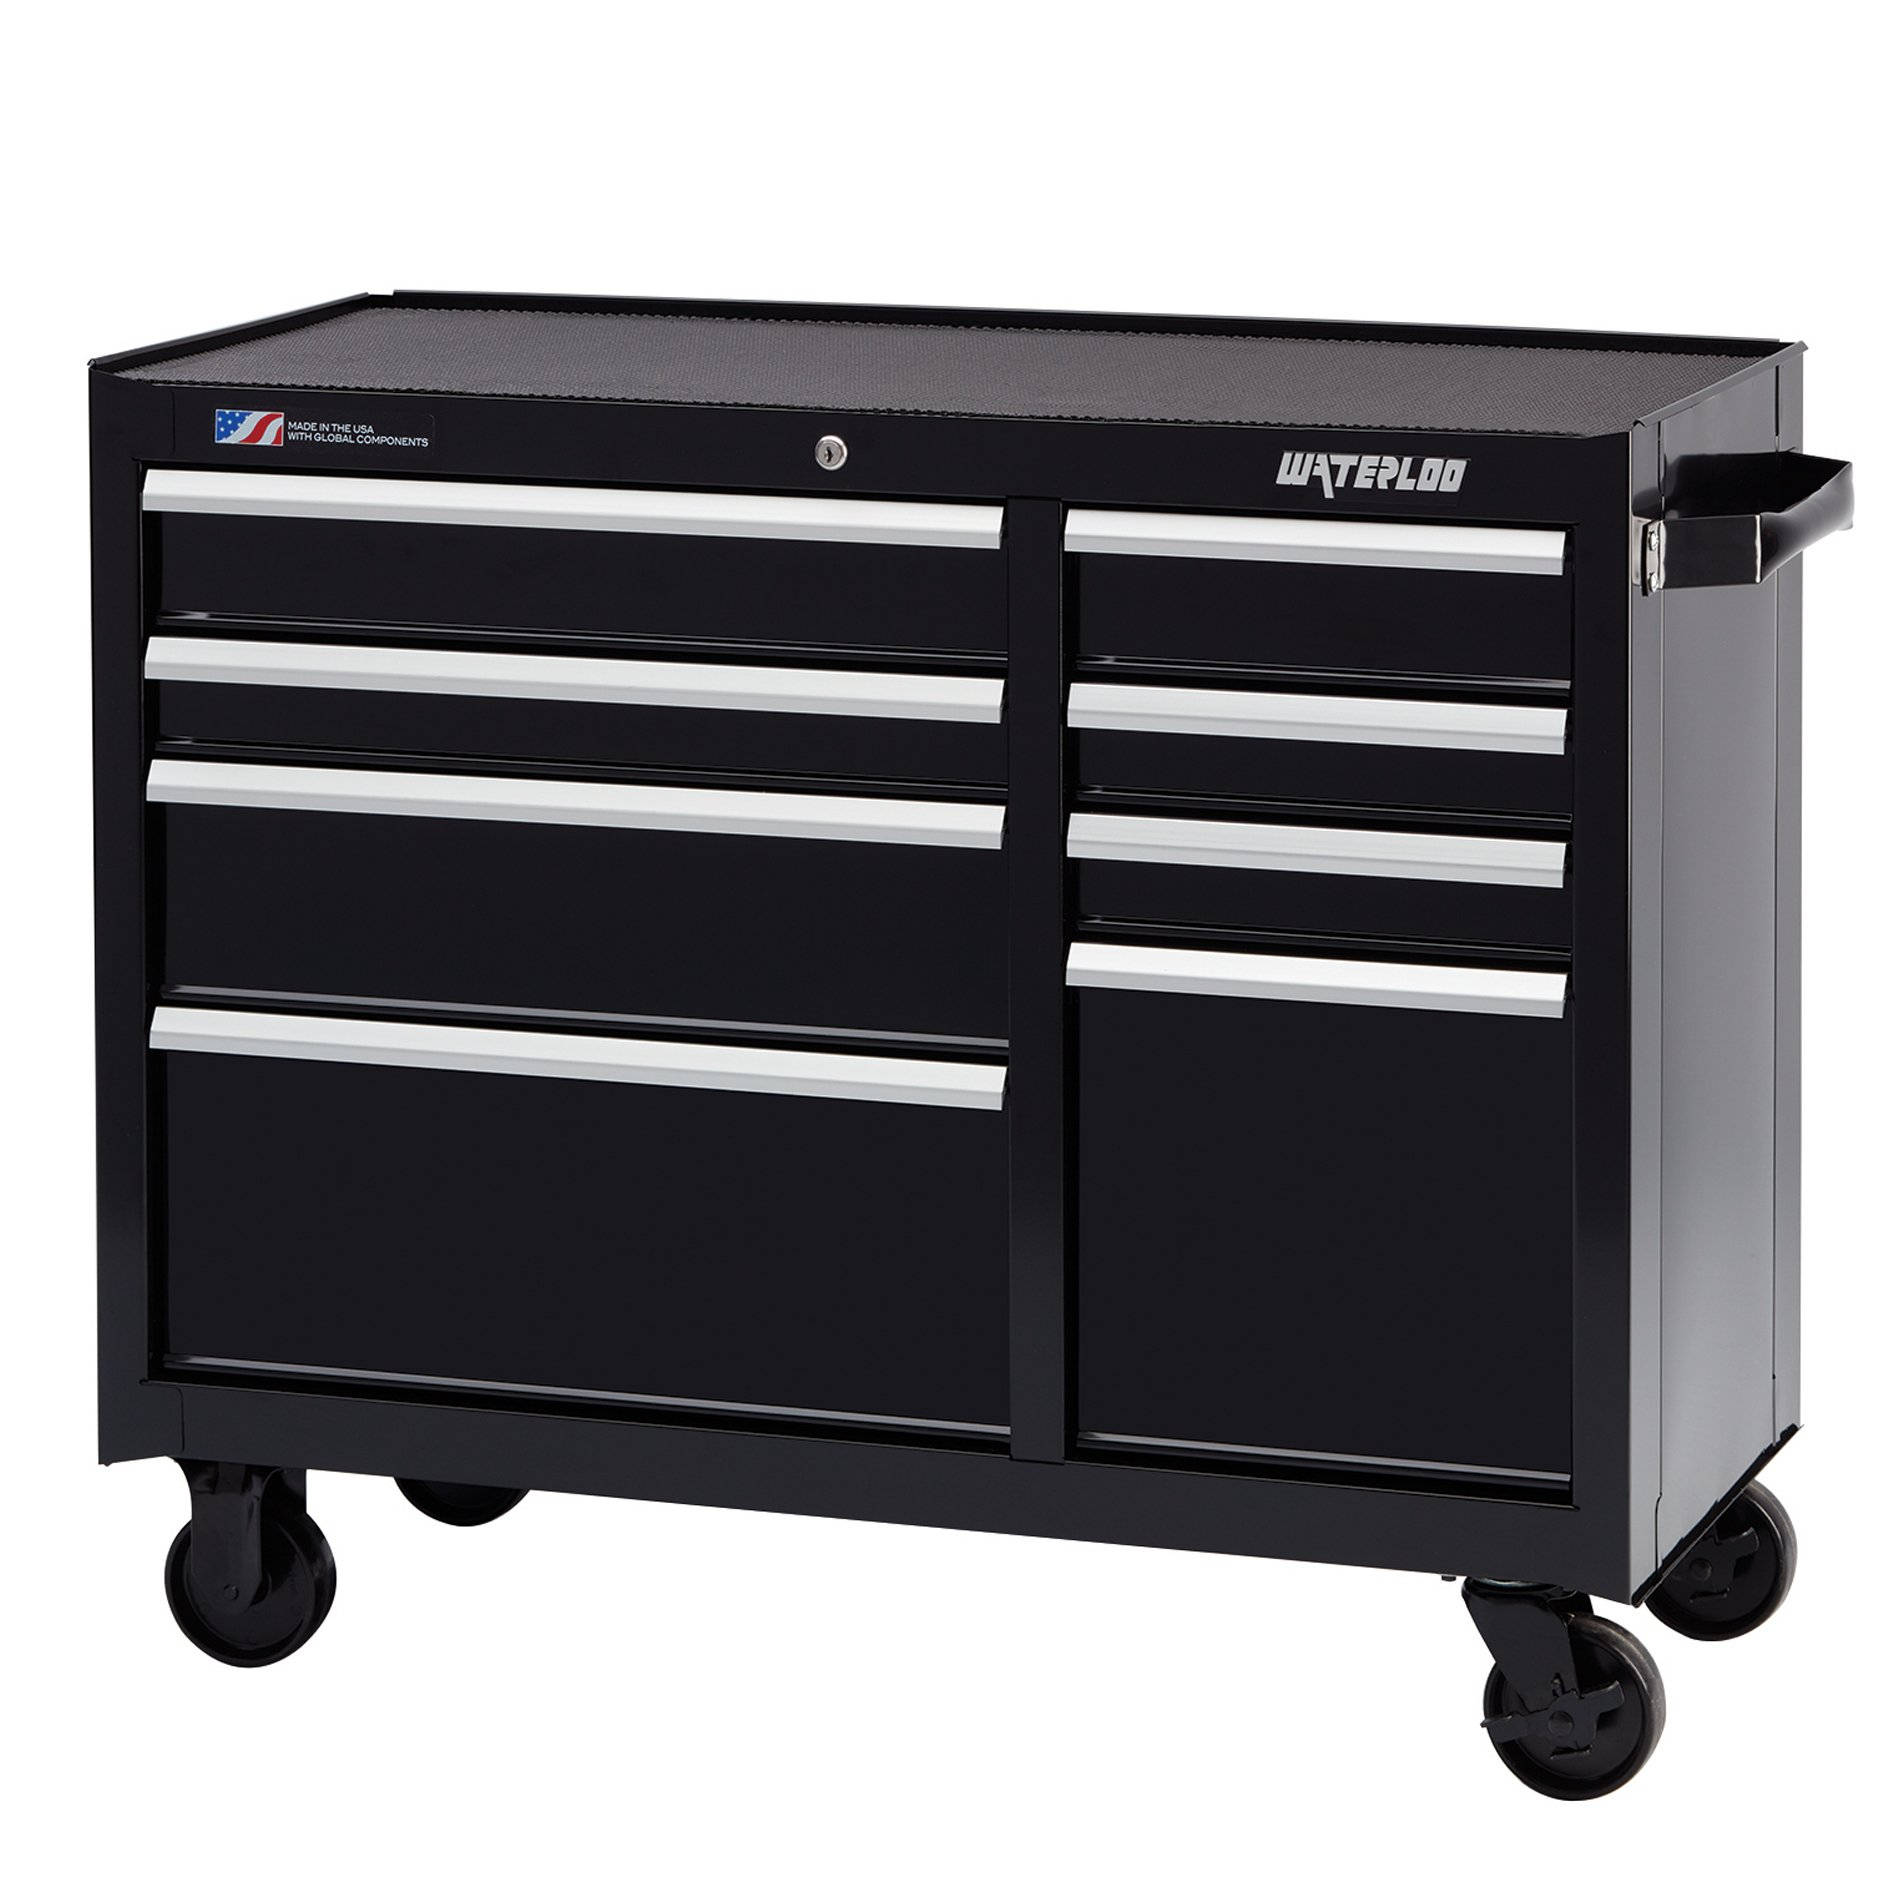 "Waterloo W300 Series 8-Drawer Rolling Tool Cabinet with Ball-Bearing Slides, 41"" W"